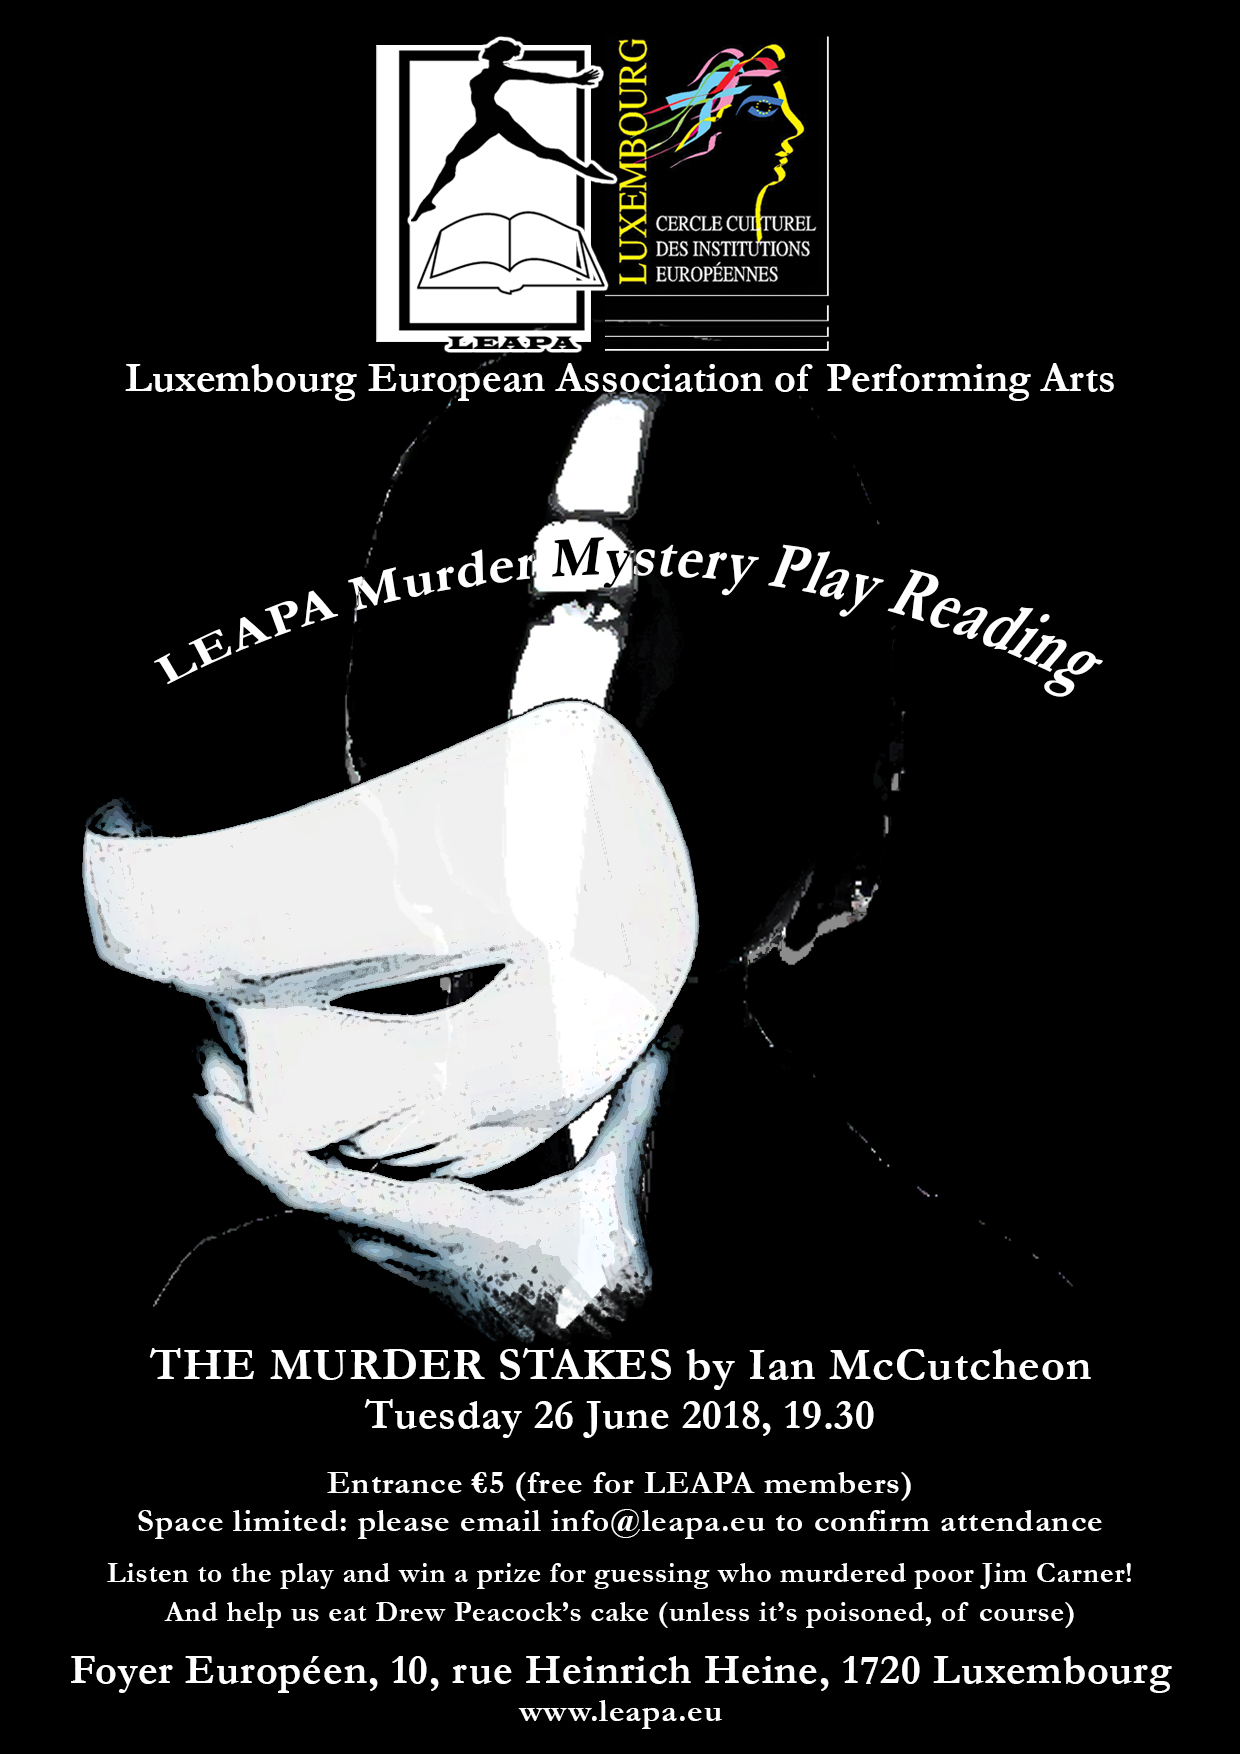 LEAPA Murder Mystery Play reading